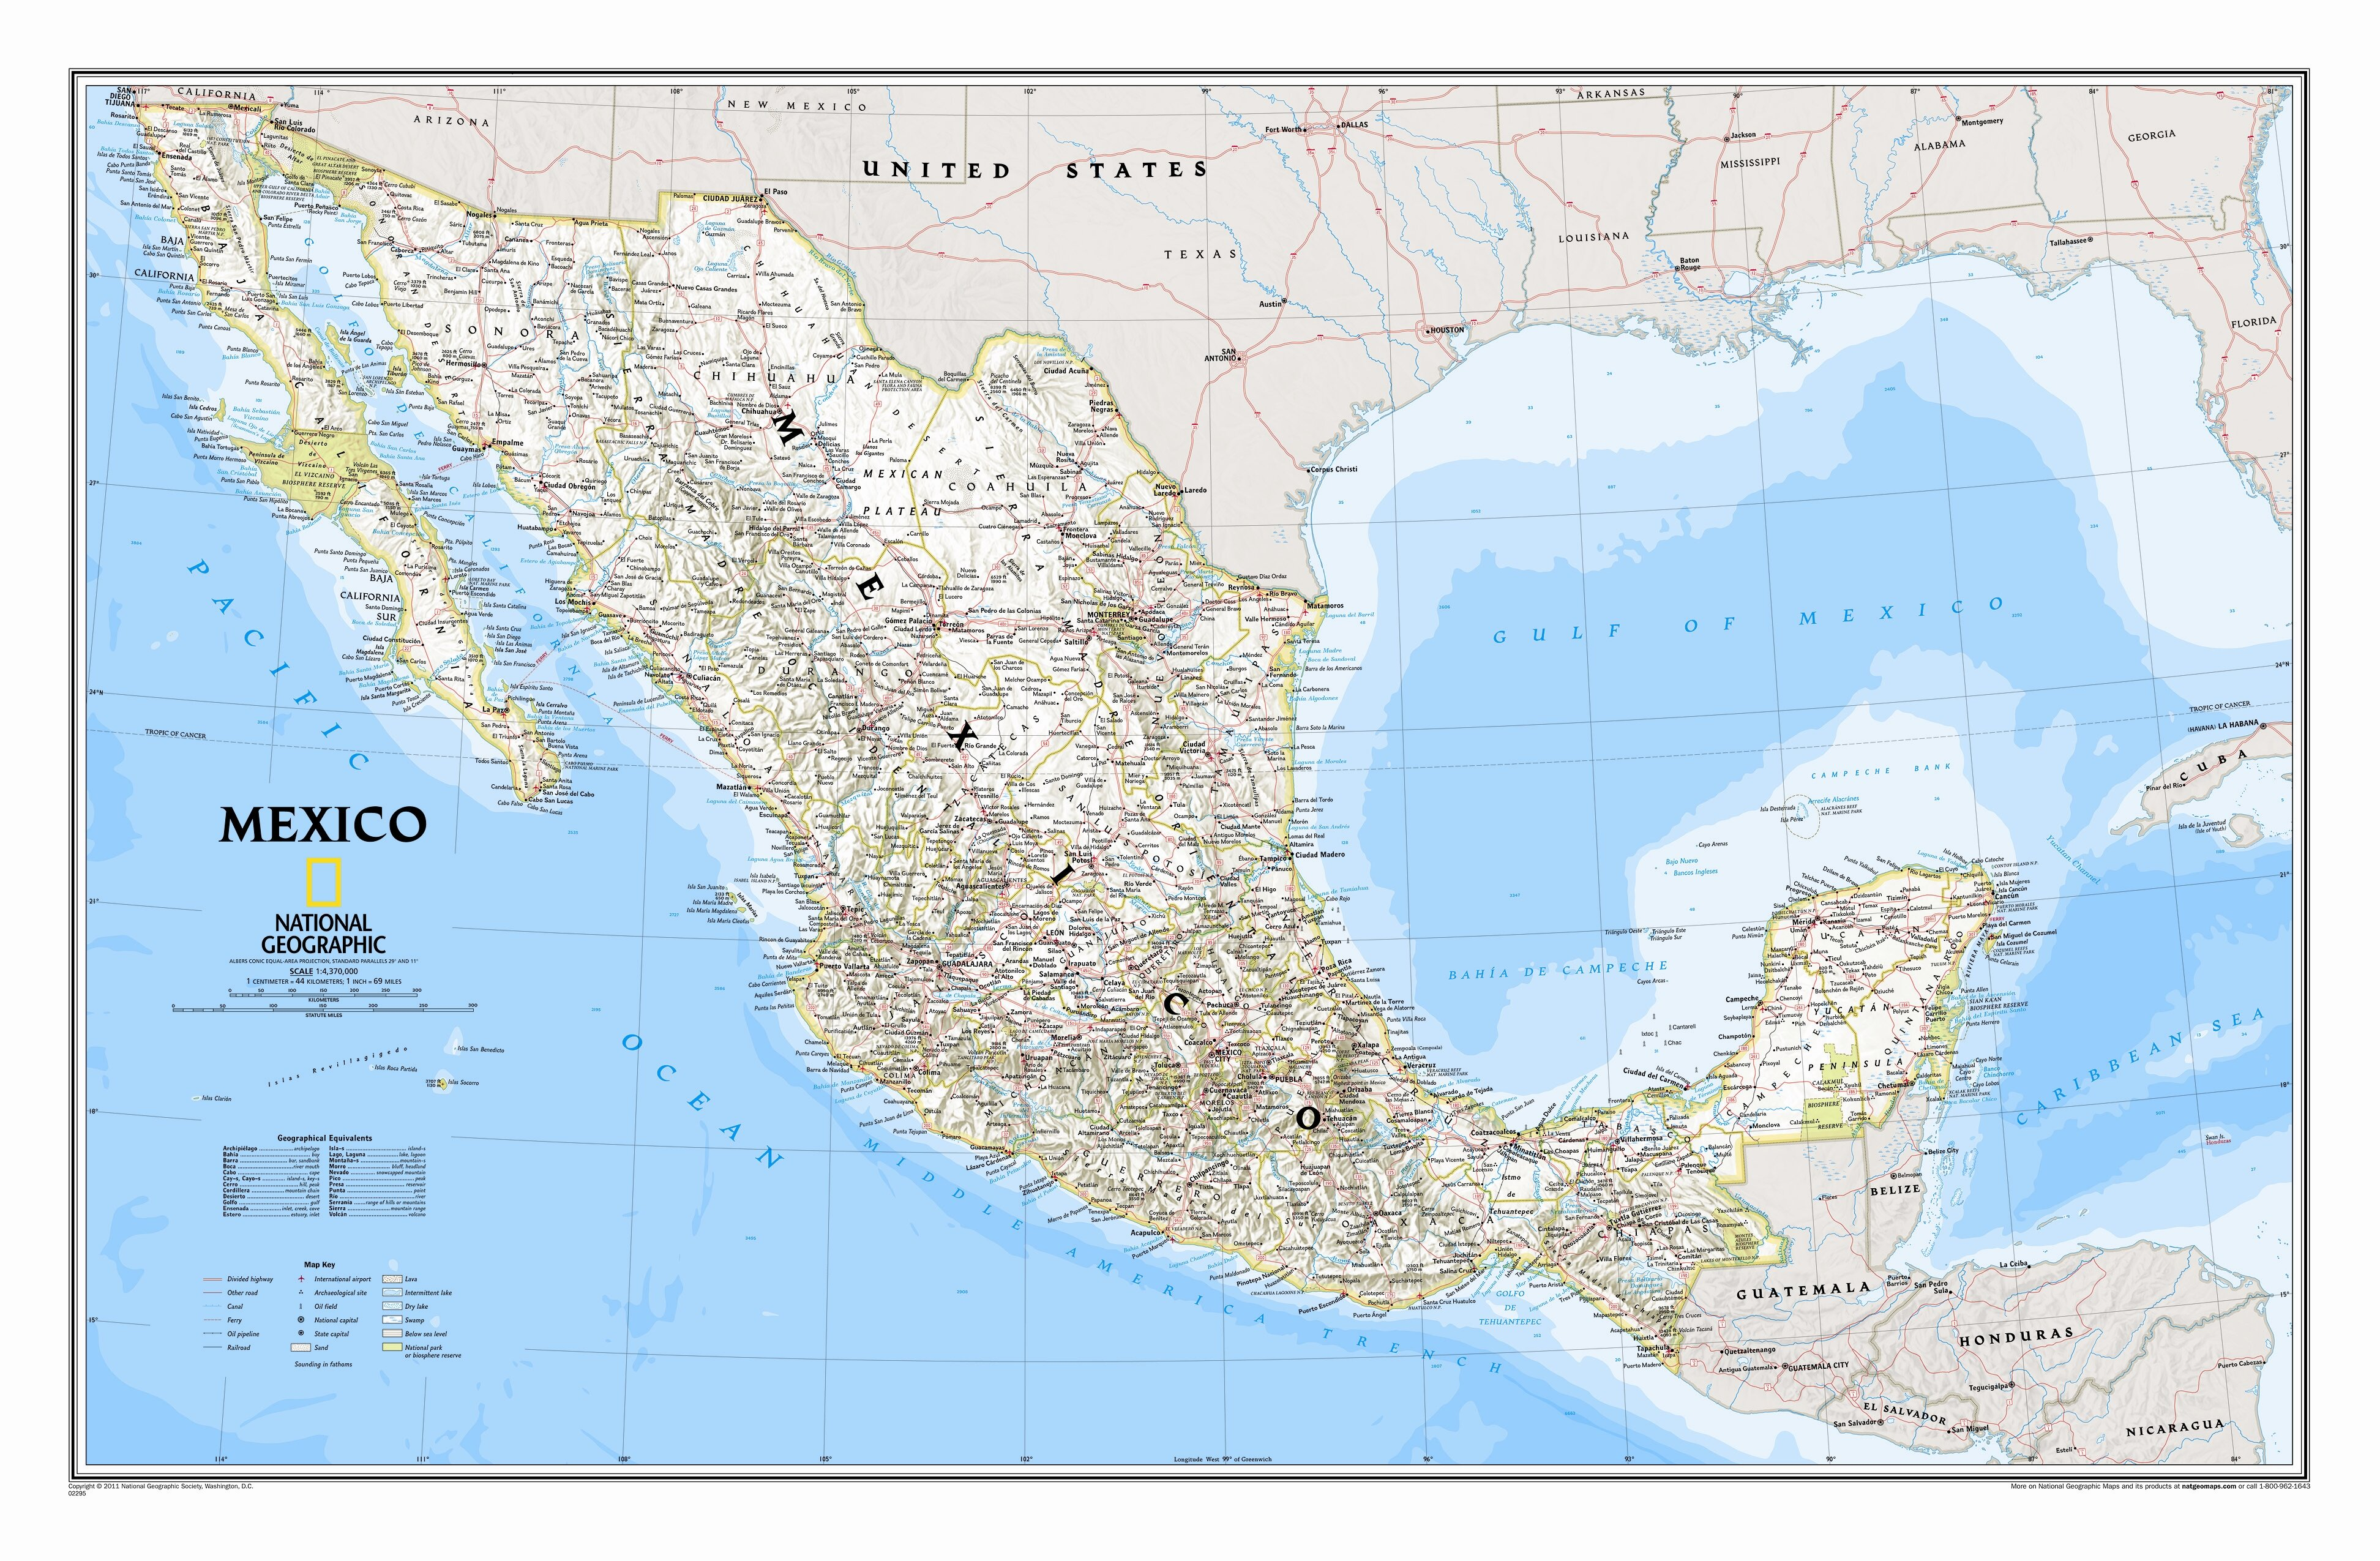 National Geographic Maps Mexico Classic Wall Map Reviews Wayfair